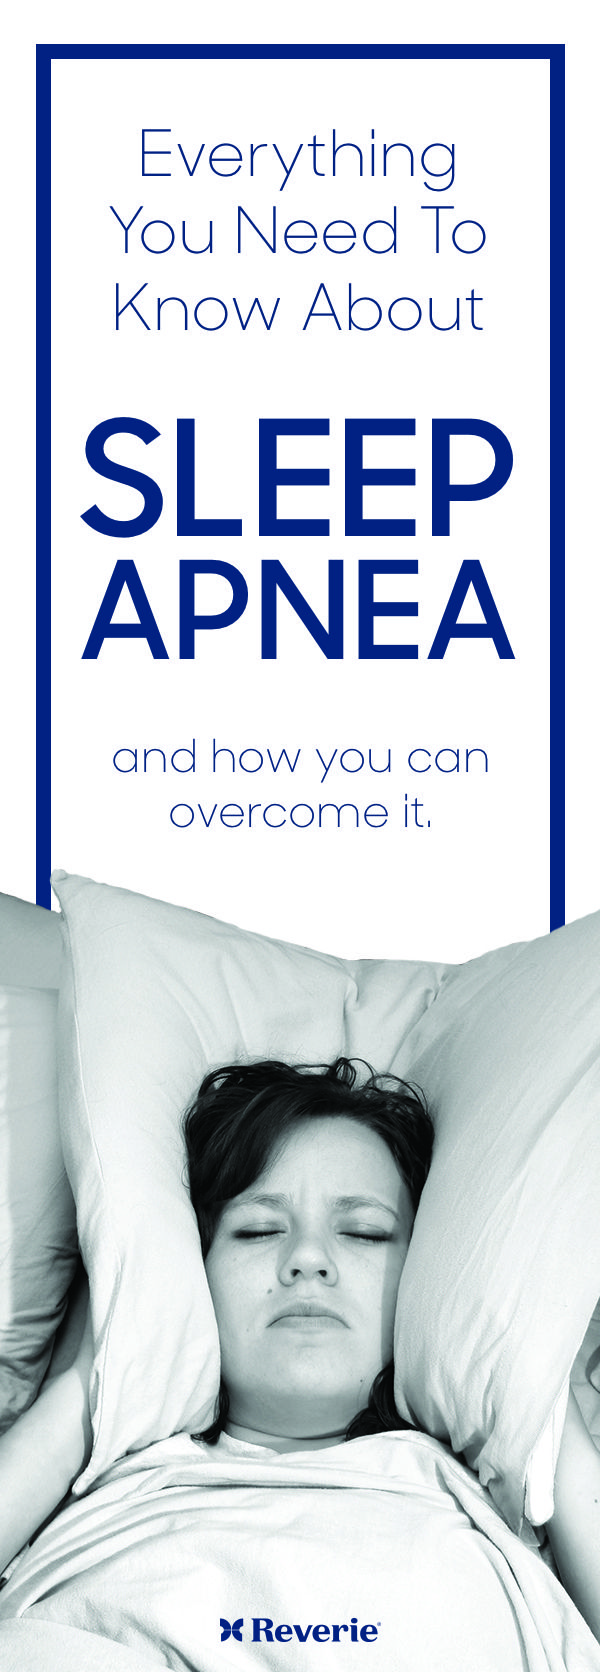 Sleep apnea is a condition that affects somewhere between twelve and twenty million Americans.  Learn more about what causes sleep apnea and how you can overcome it here.